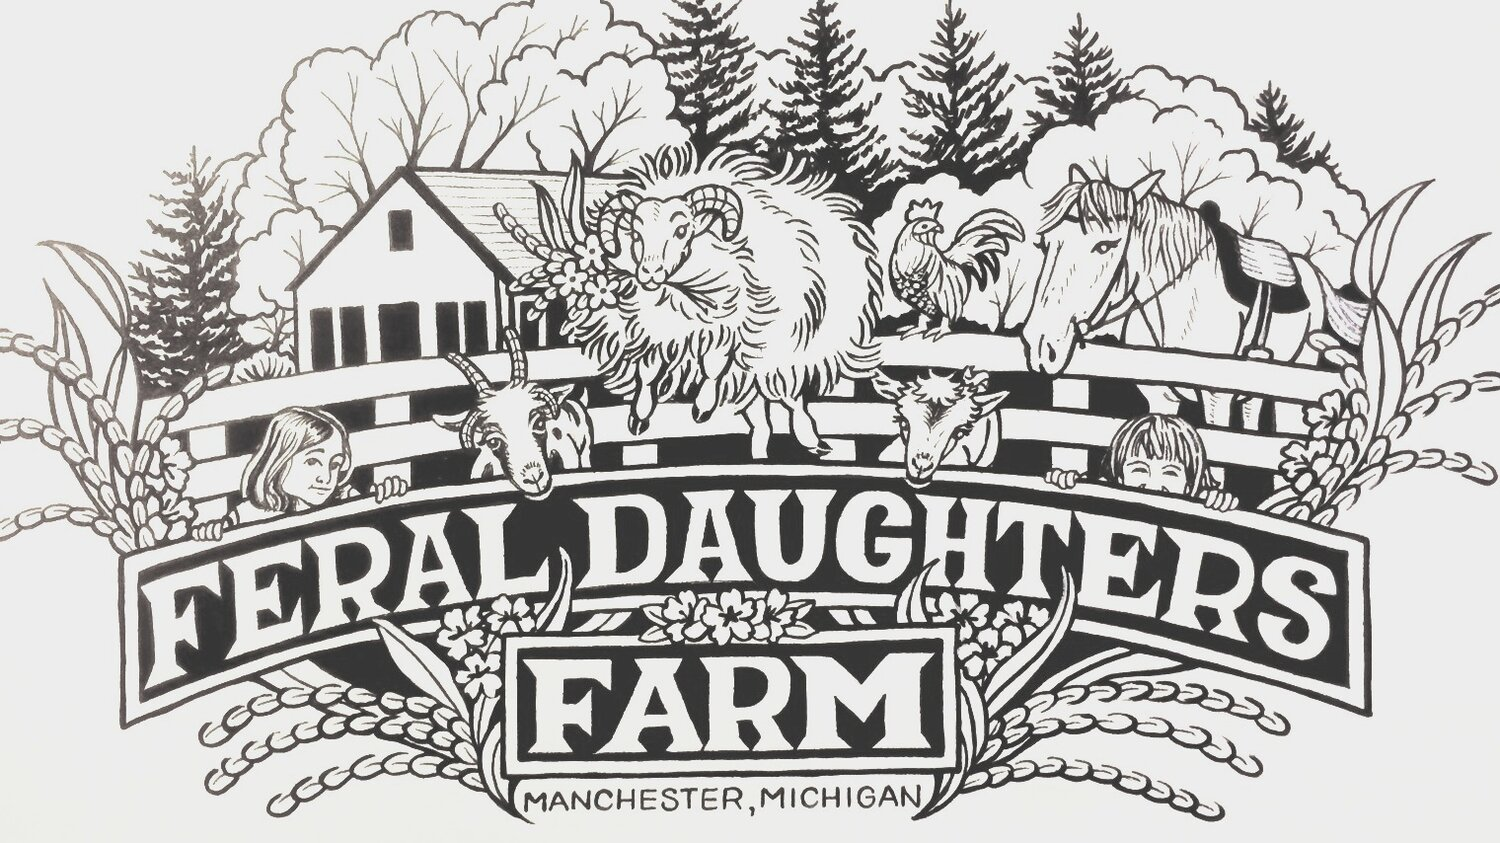 Feral Daughters Farm